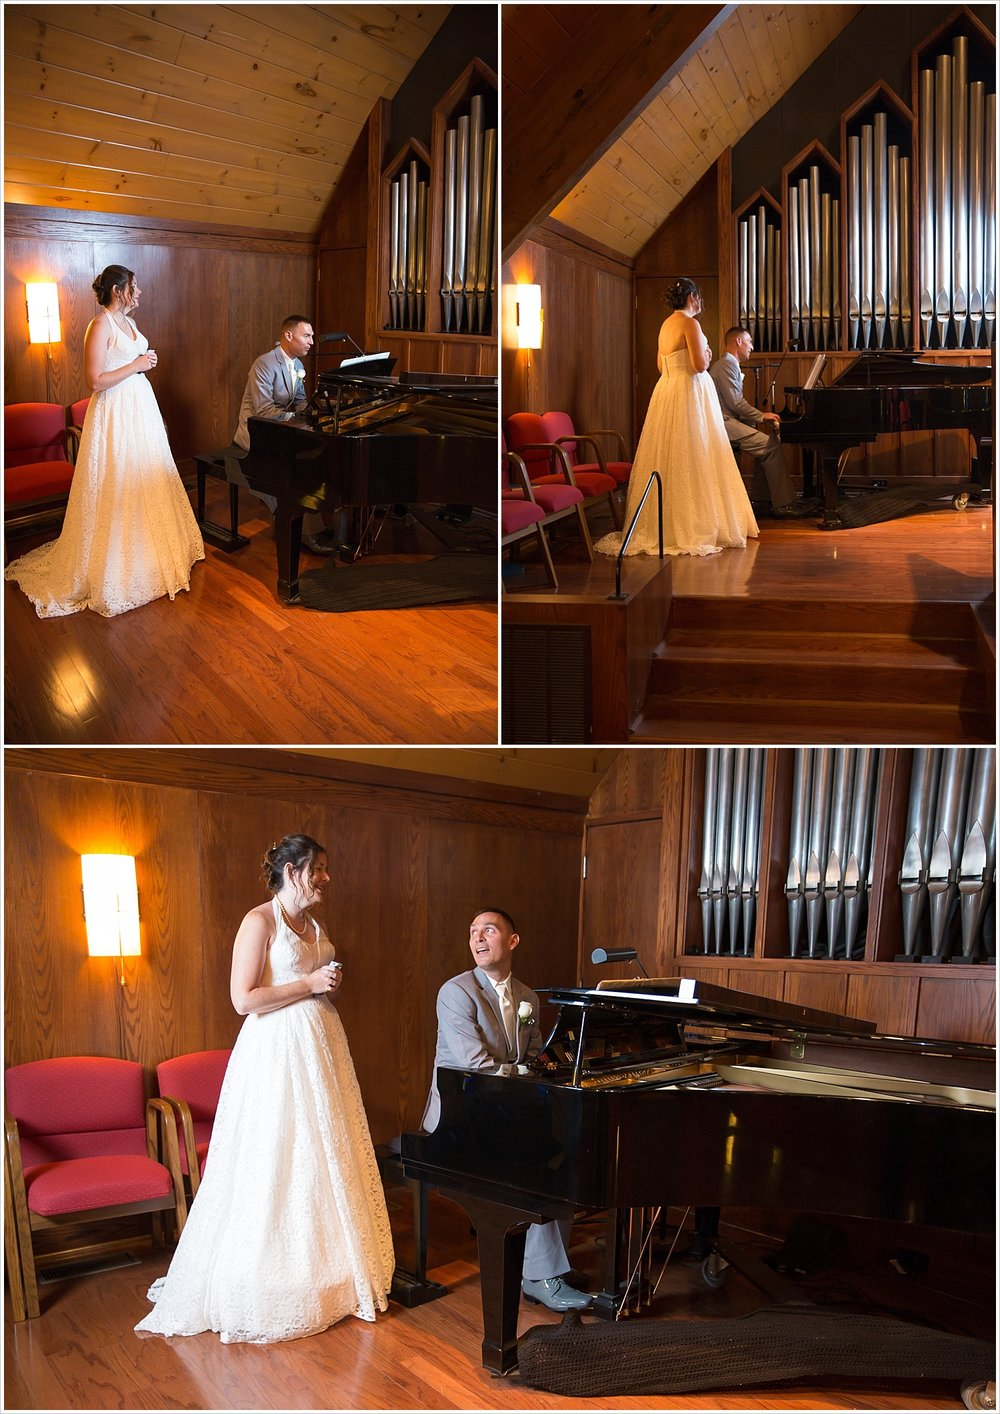 Groom plays for bride on the piano during their first look in the sanctuary of Central Presbyterian Church in Waco/Woodway, TX - Jason & Melaina Photography, www.jasonandmelaina.com